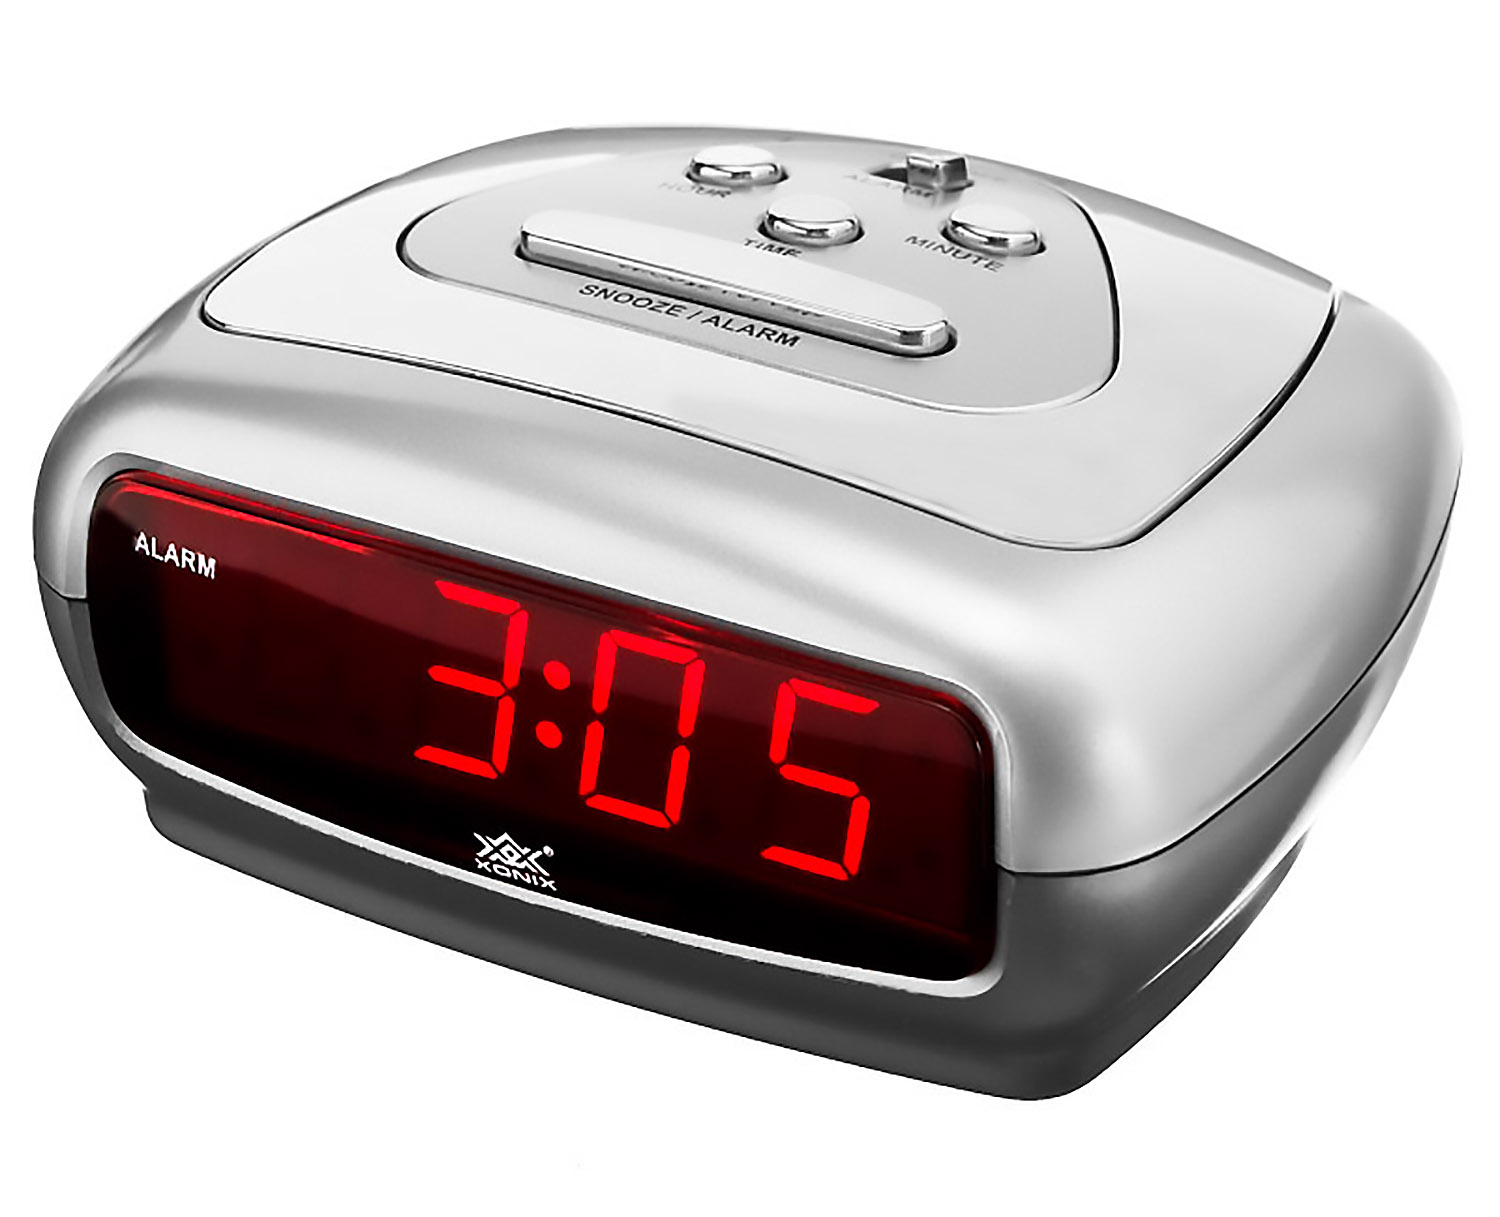 Small Led Alarm Clock Small Alarm Clock Xonix 43 Snooze Sharp Digital Led